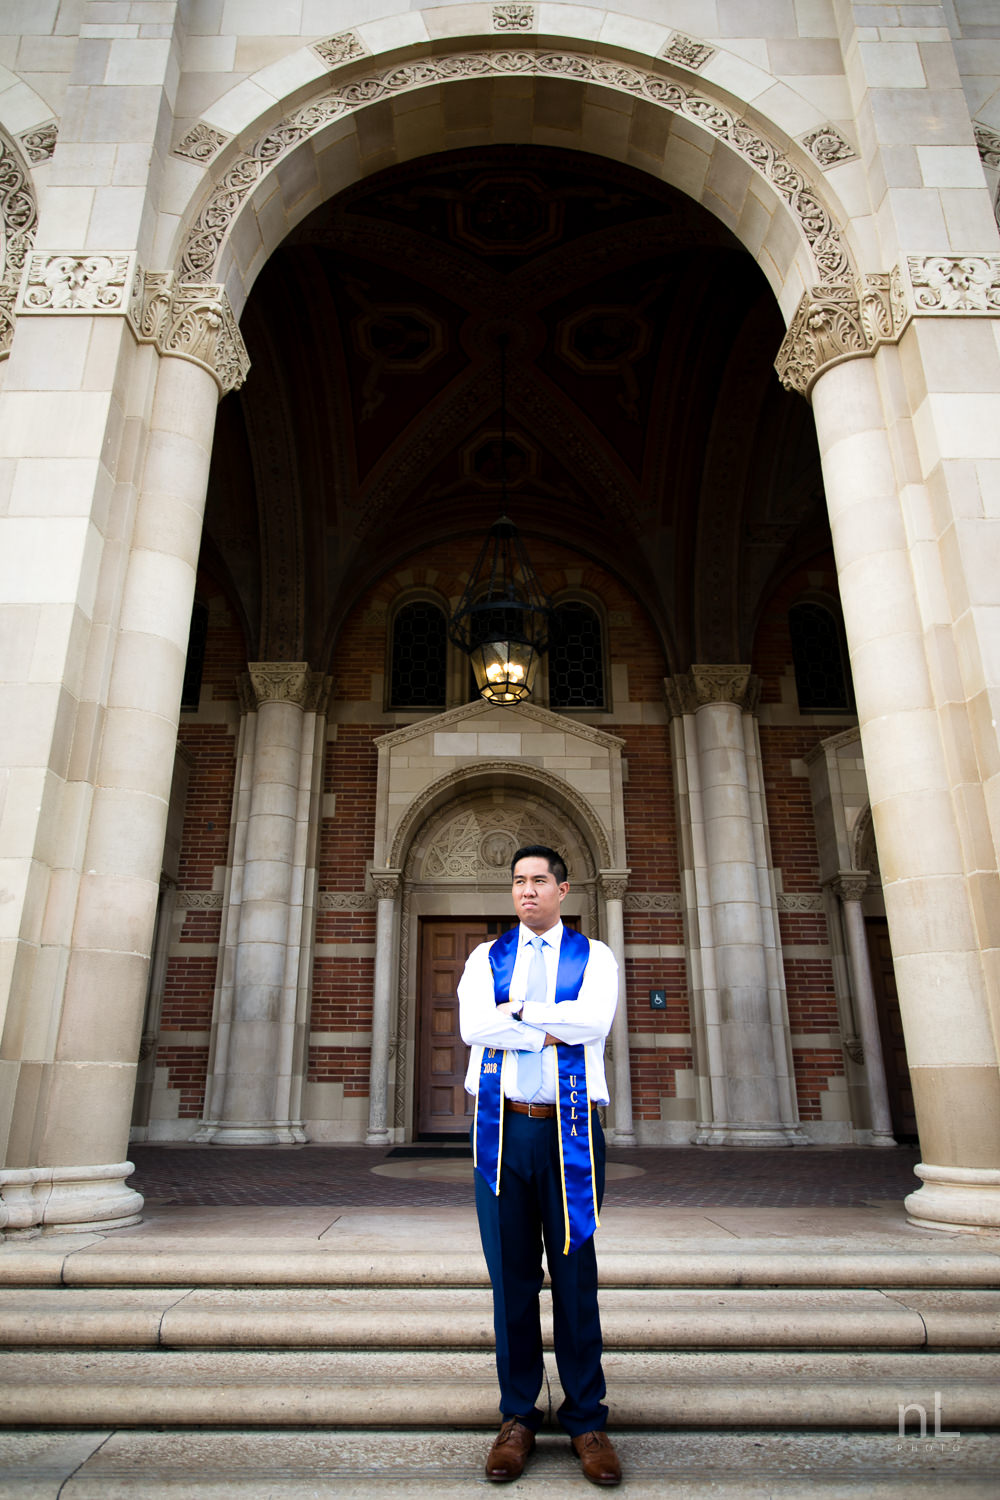 los-angeles-ucla-senior-graduation-portraits-7068.jpg